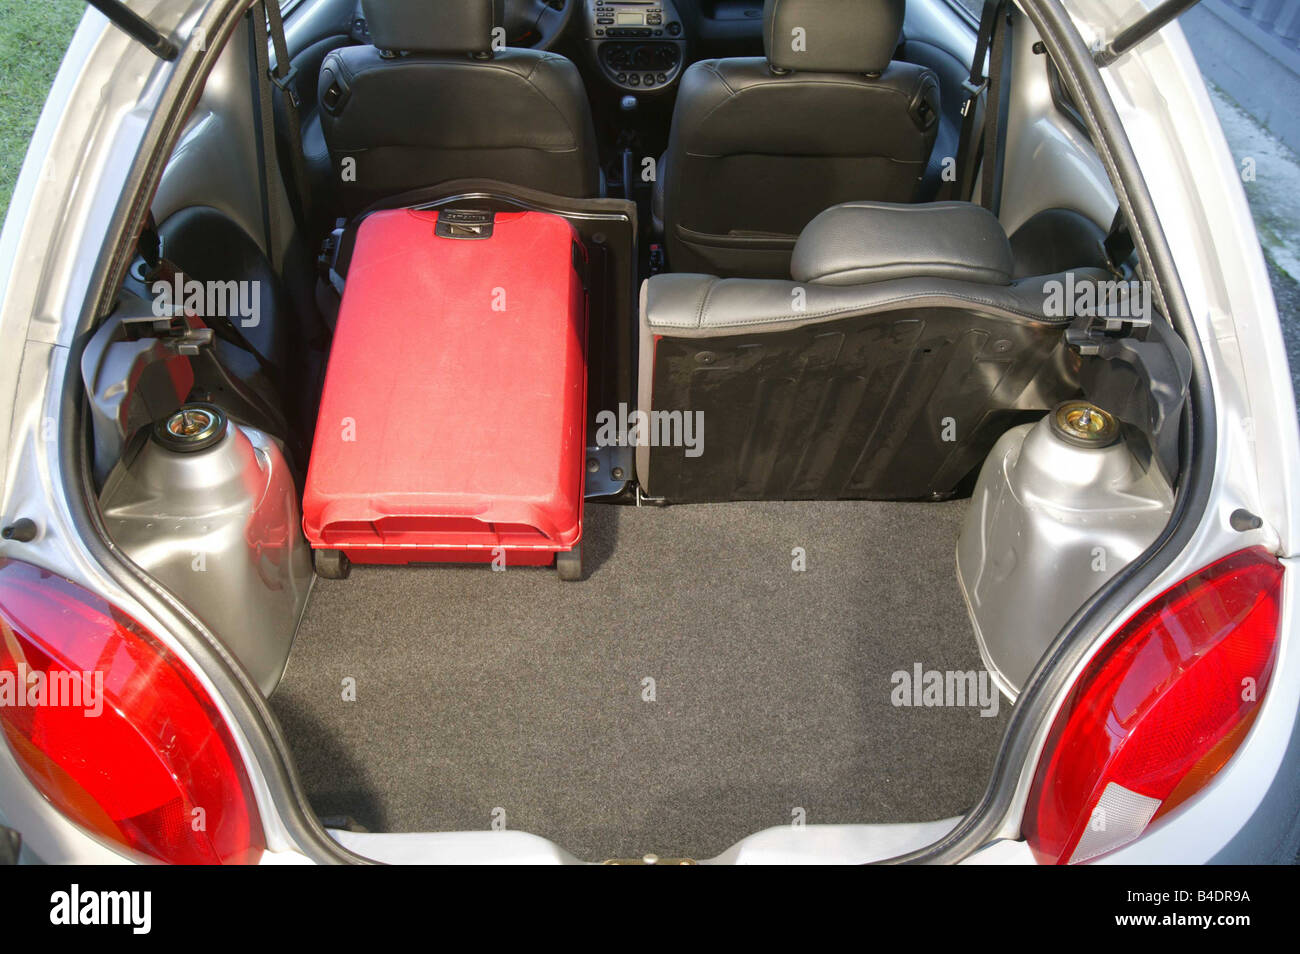 Car Ford Ka Miniapprox S Model Year  Silver